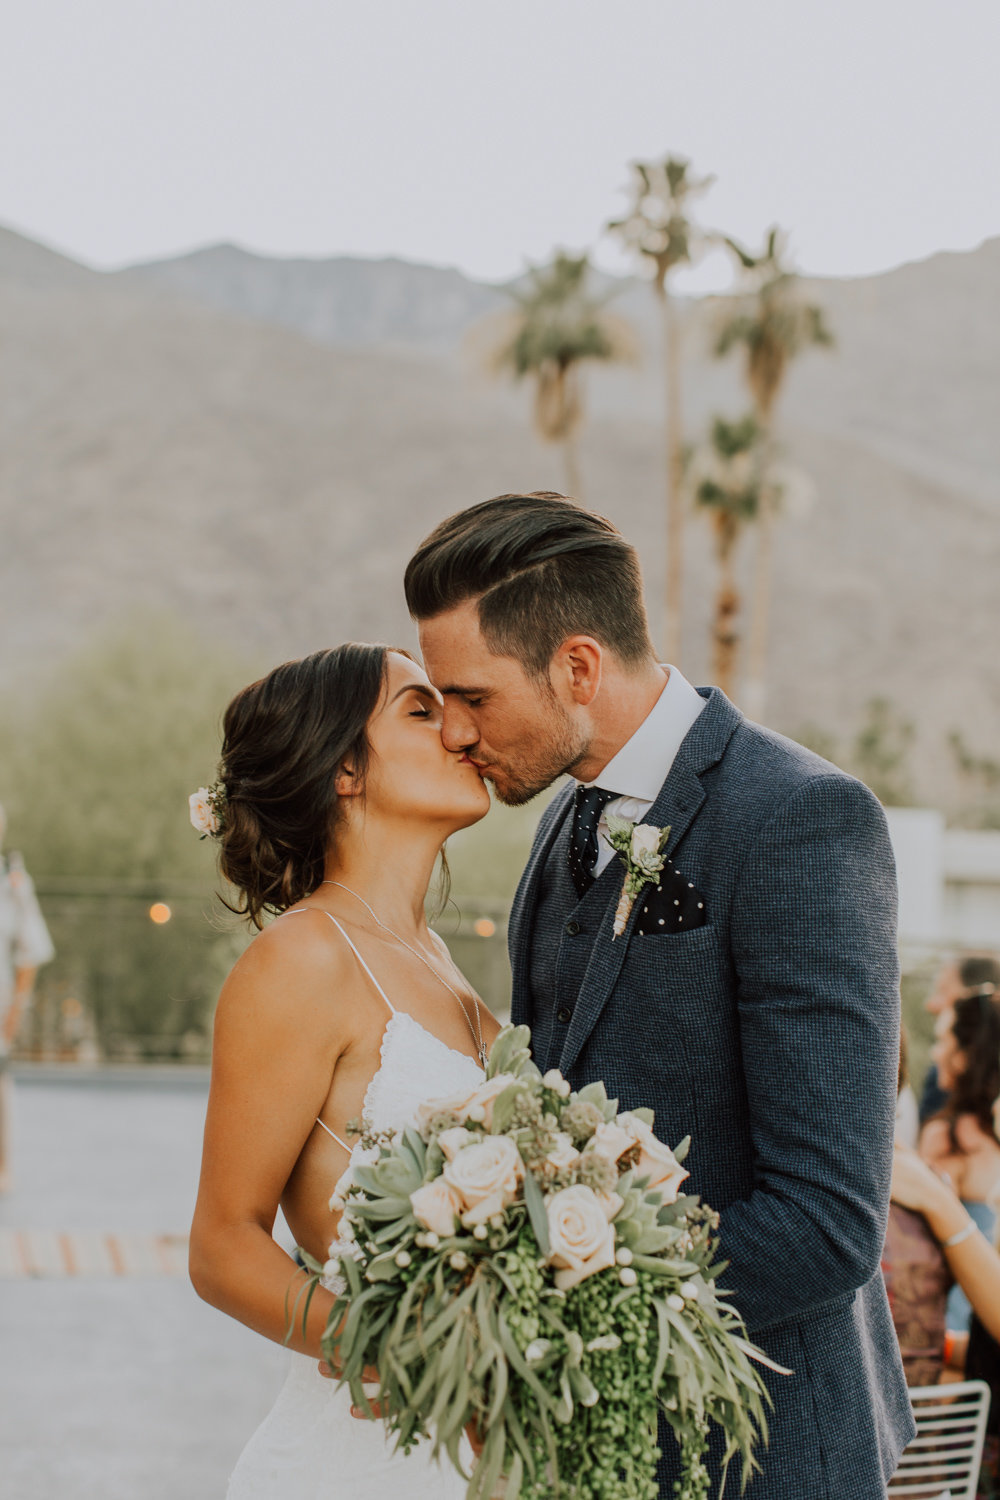 Brianna Broyles_Palm Springs Wedding Photographer_Ace Hotel Wedding_Ace Hotel Palm Springs-57